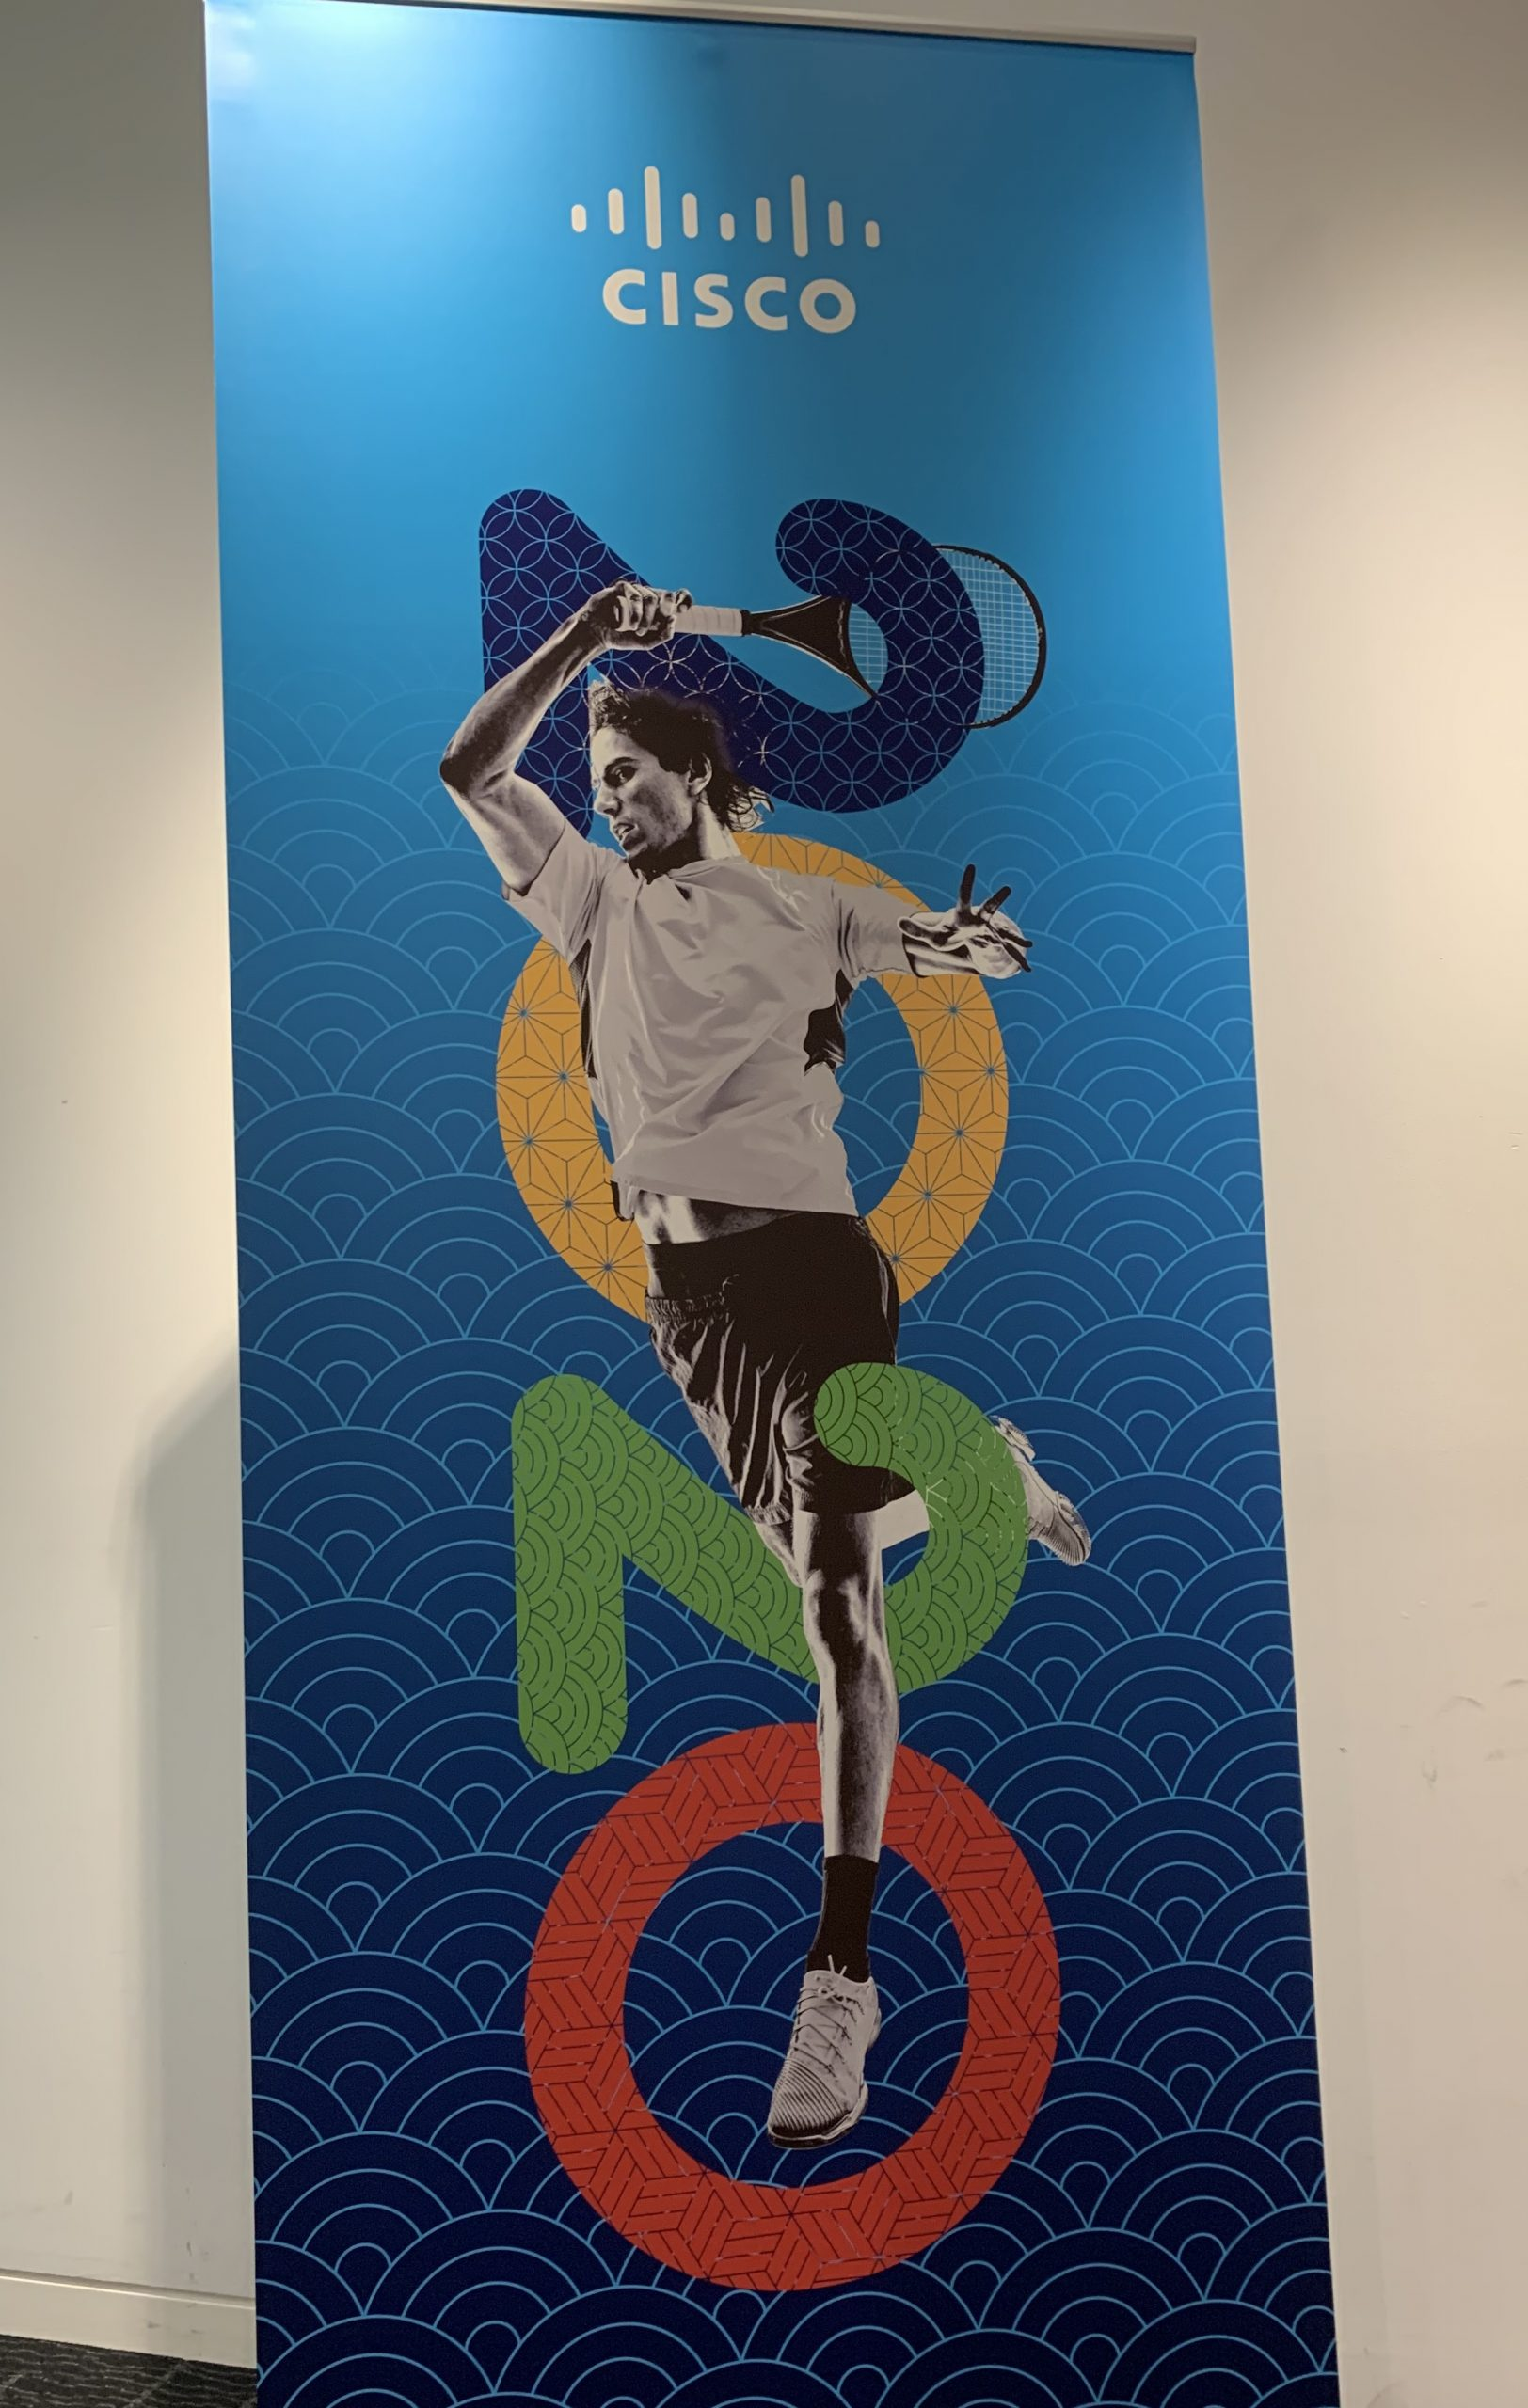 A Cisco banner with a person swinging a tennis racket intertwined with 2020